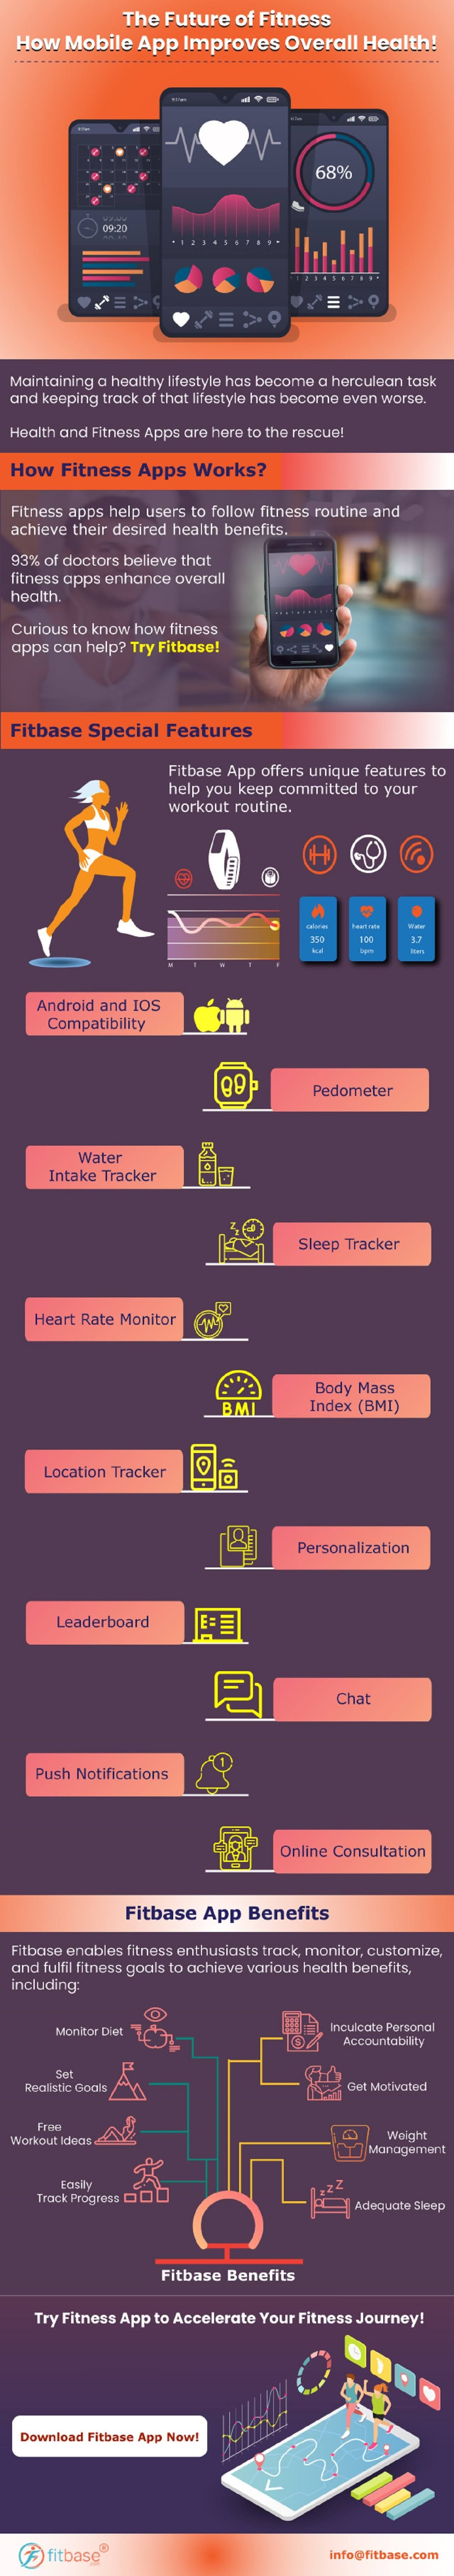 the-future-of-fitness-how-mobile-apps-improve-overall-health-infographic